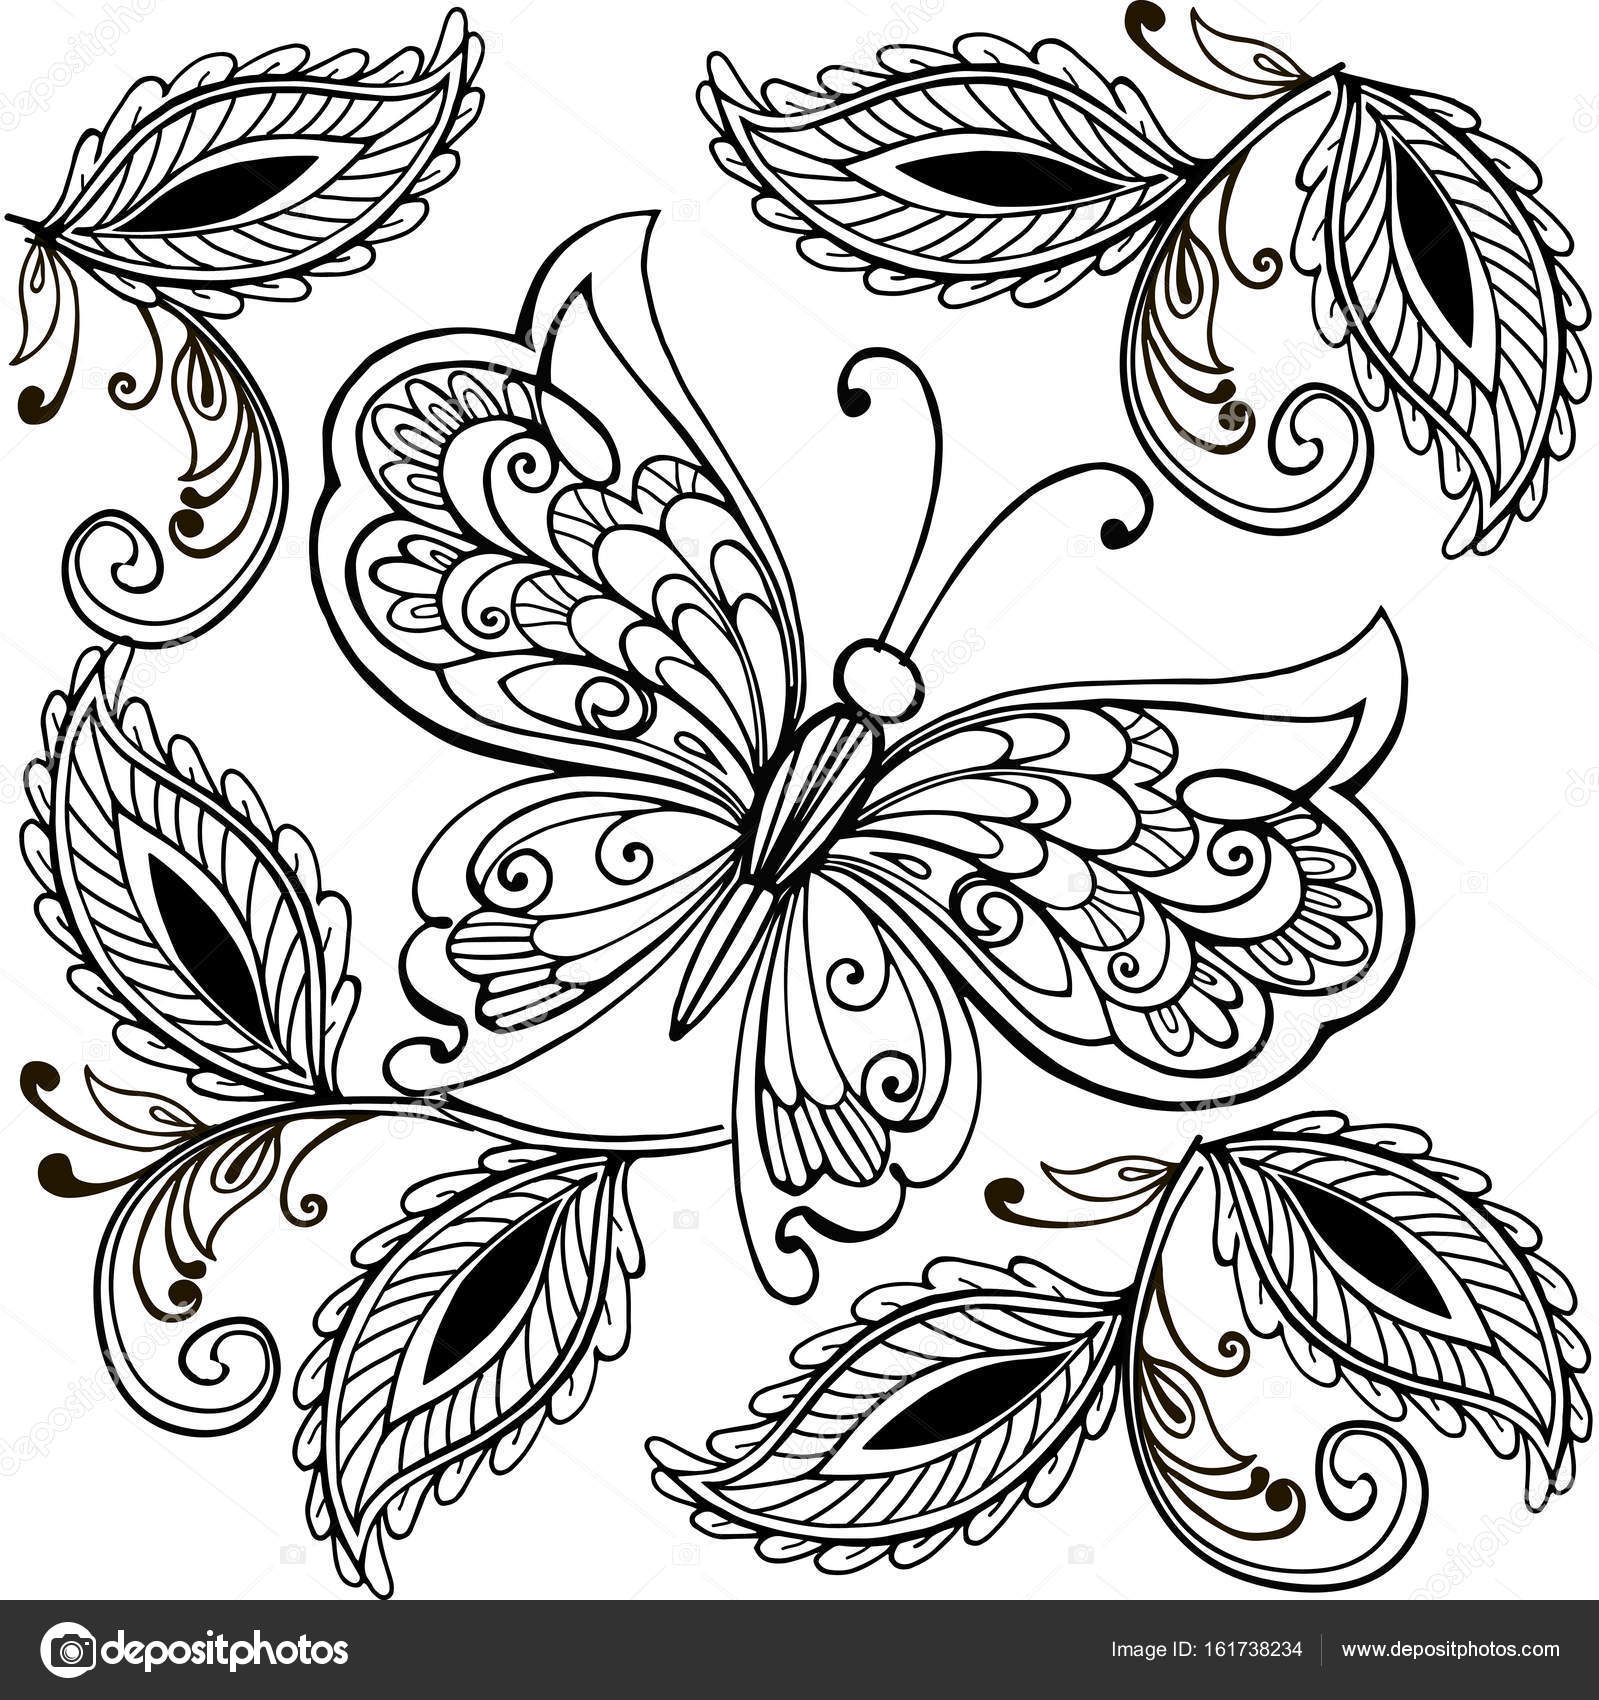 1599x1700 Hand Drawn Butterfly And Decorative Leaves Adult Anti Stress